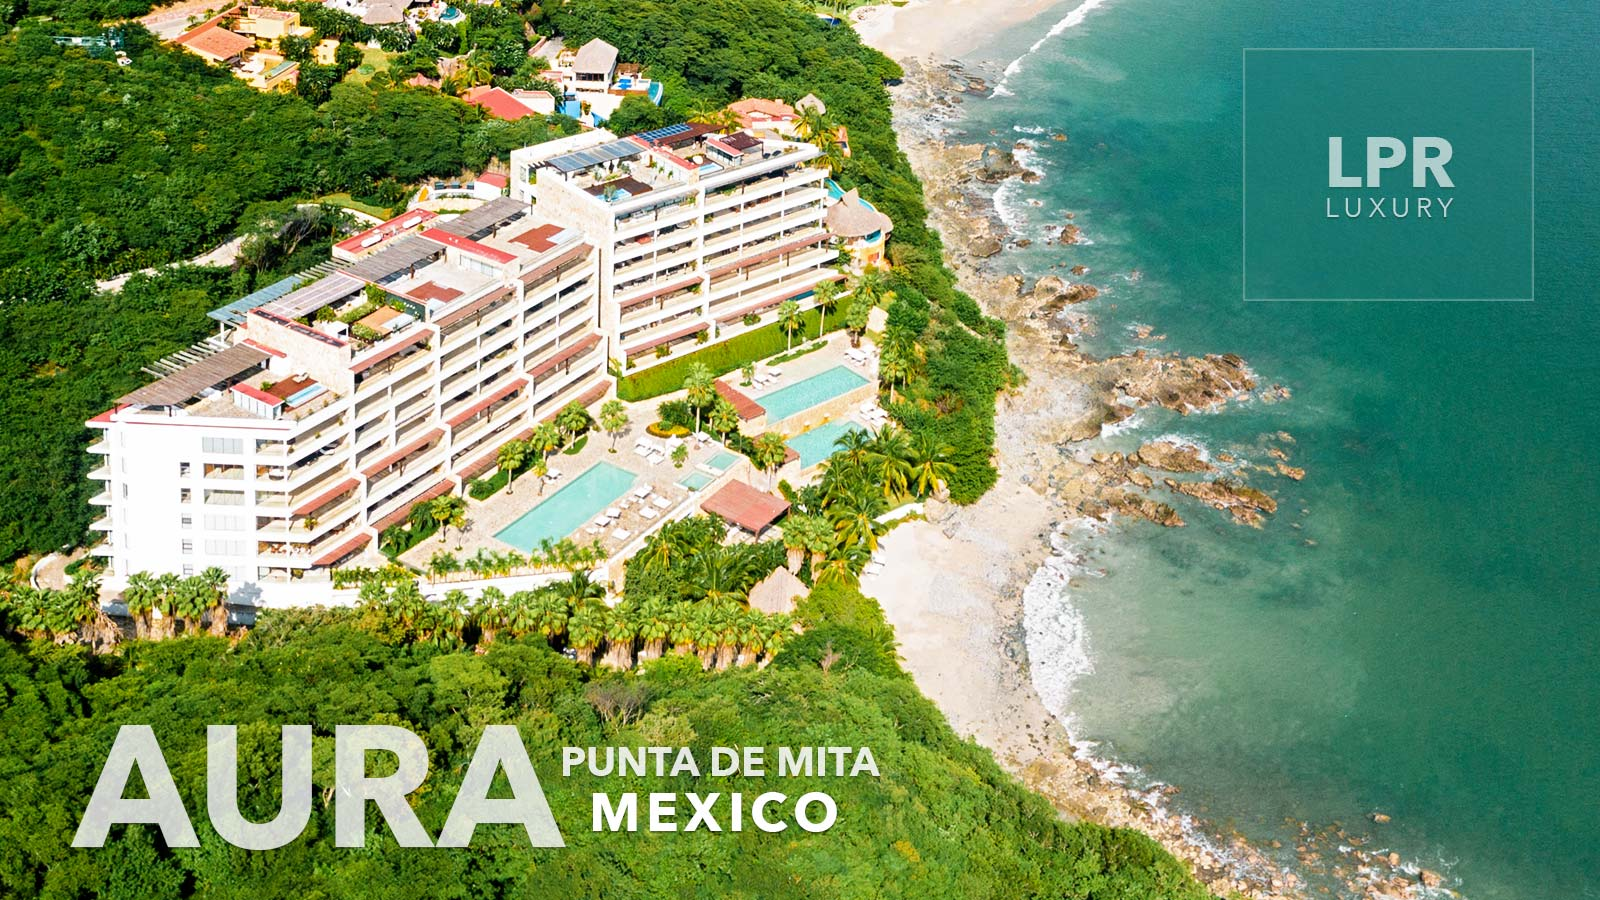 Aura Arena Blanca - Punta de Mita beachfront condos for rent and sale - Puerto Vallarta, Riviera Nayarit, Mexico